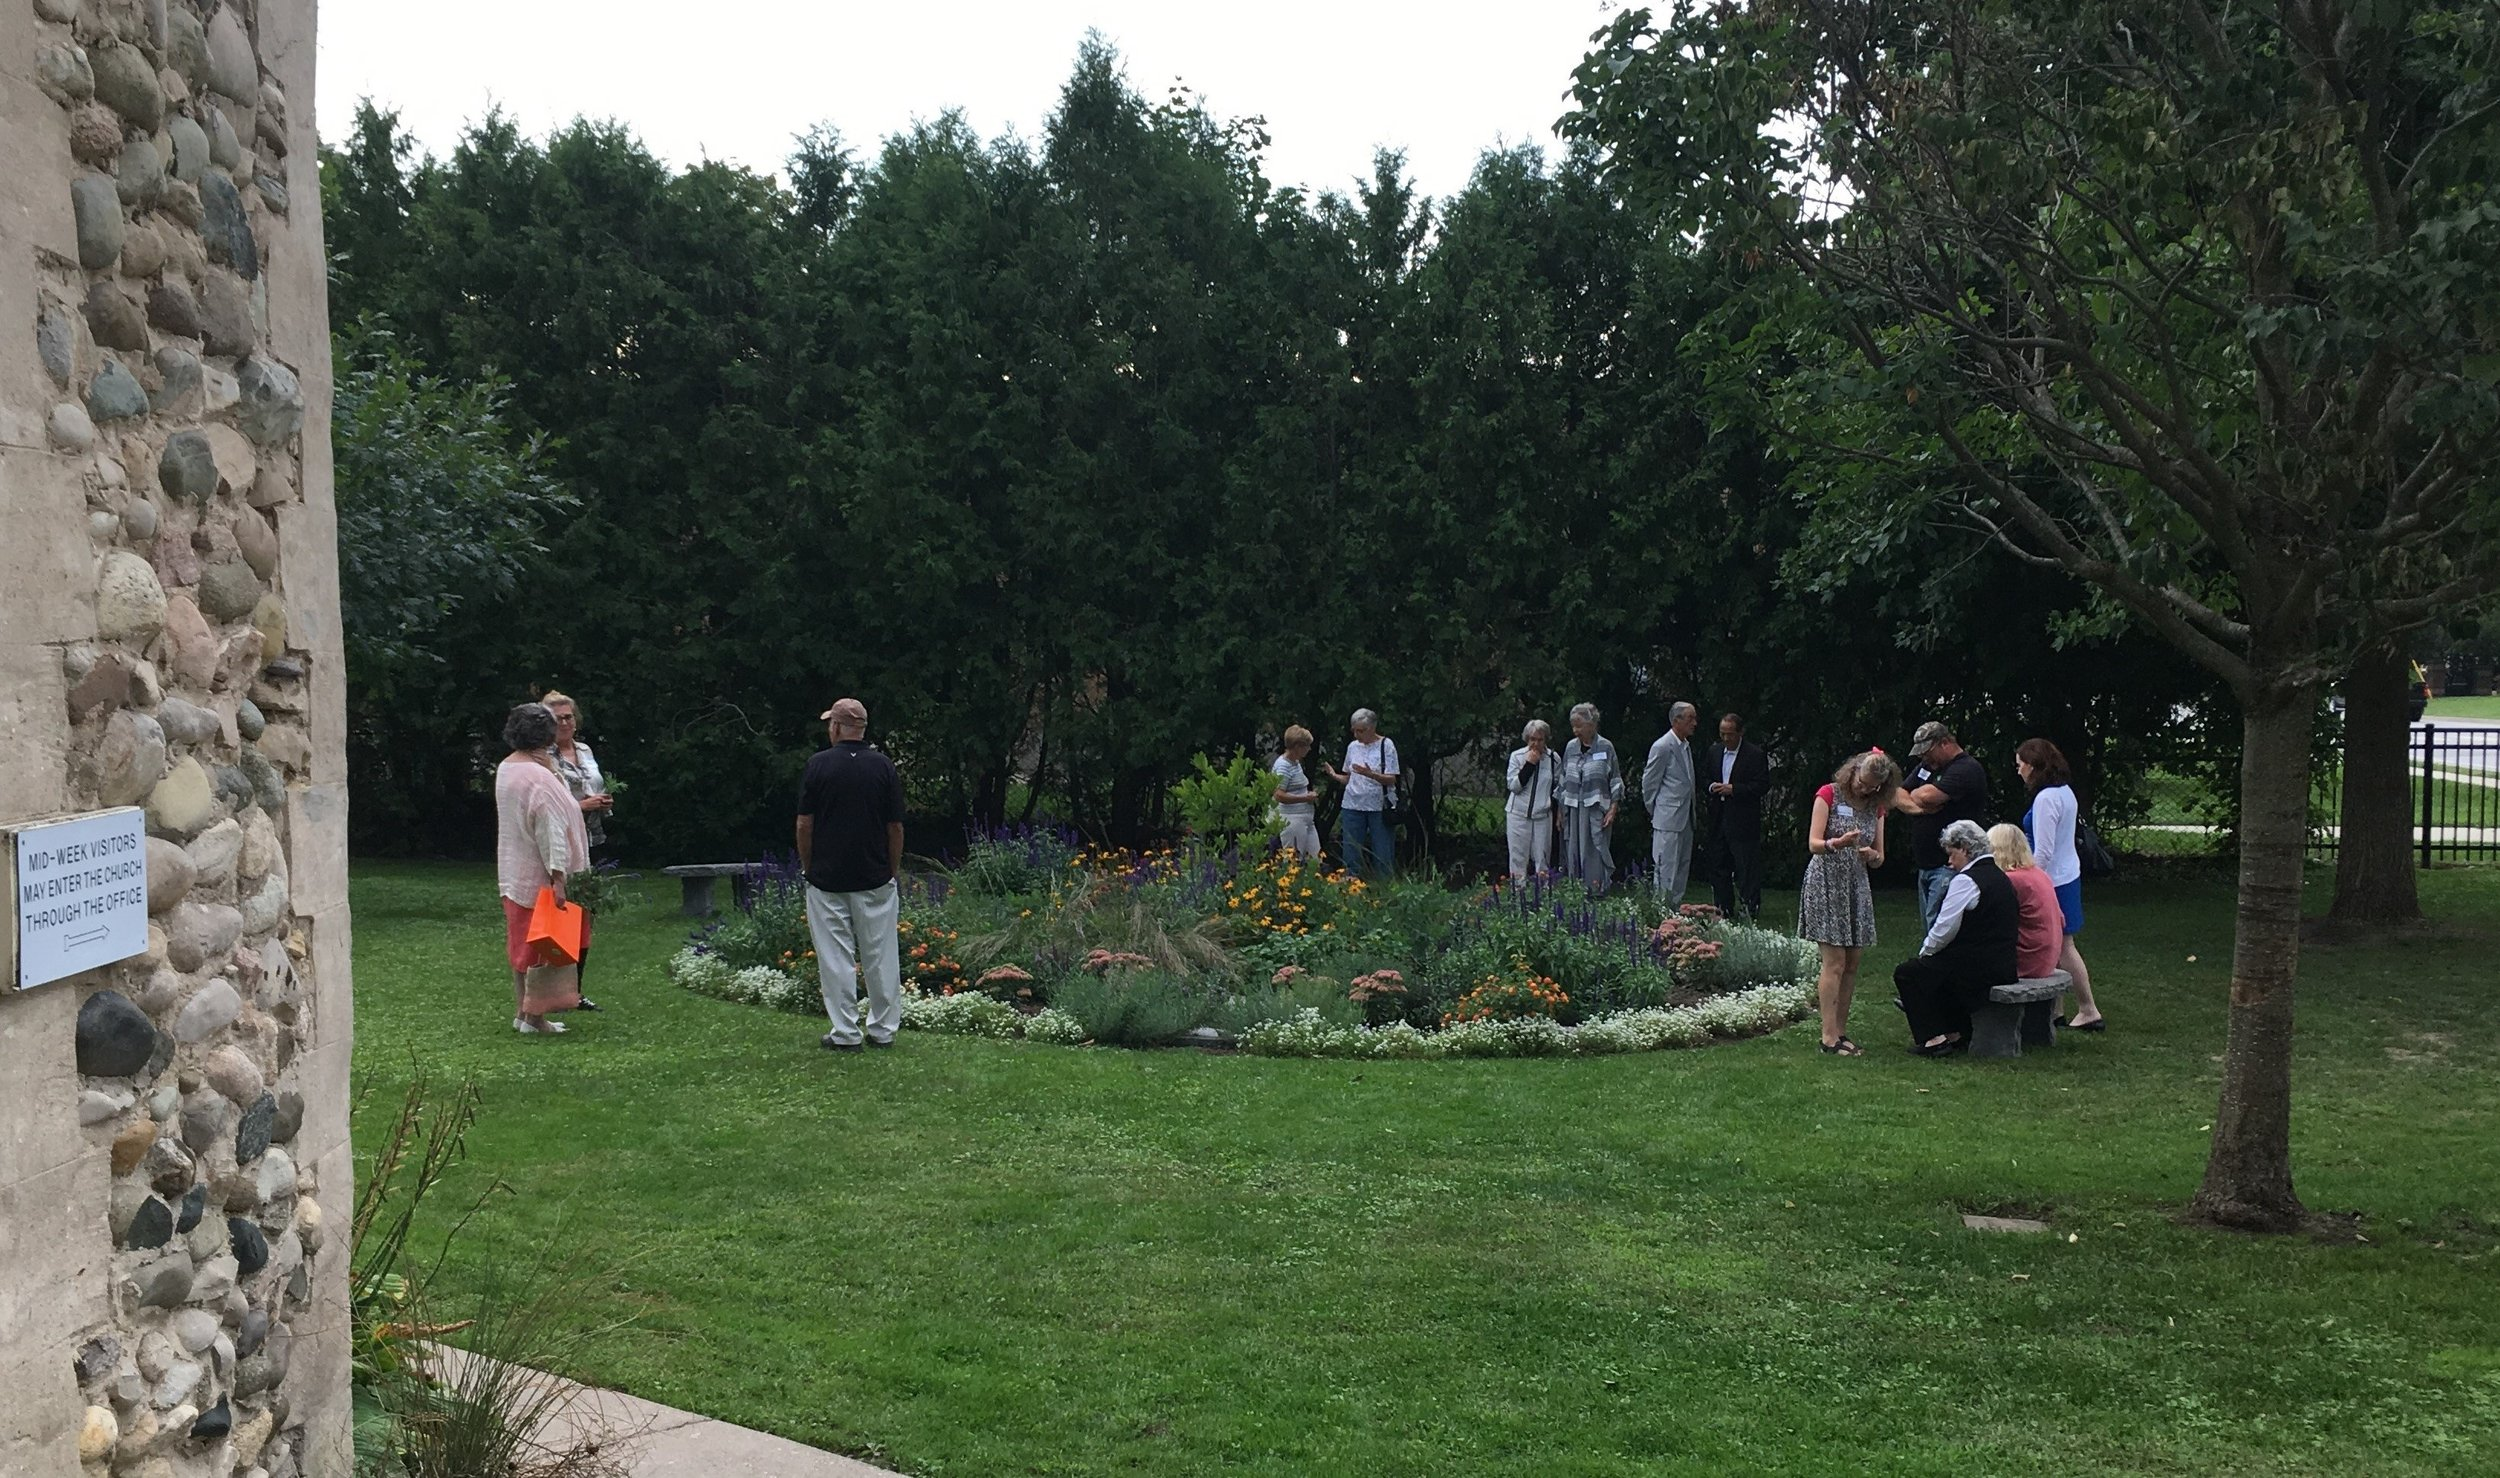 The St. Anne's pollination garden (1344 Commissioners Rd W in Byron)